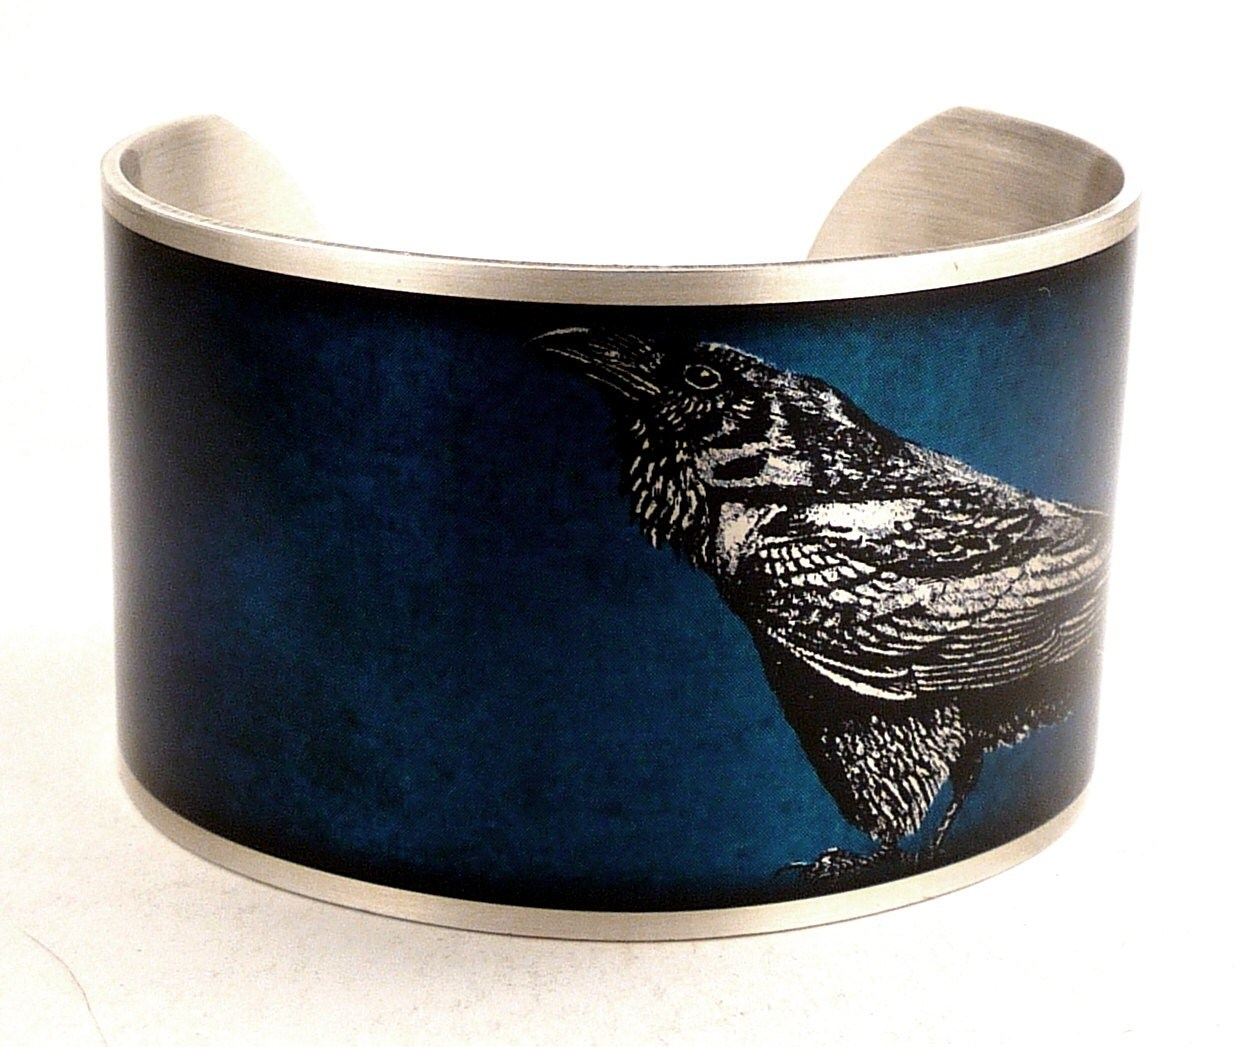 the cuff edgar allan poe inspired jewelry by